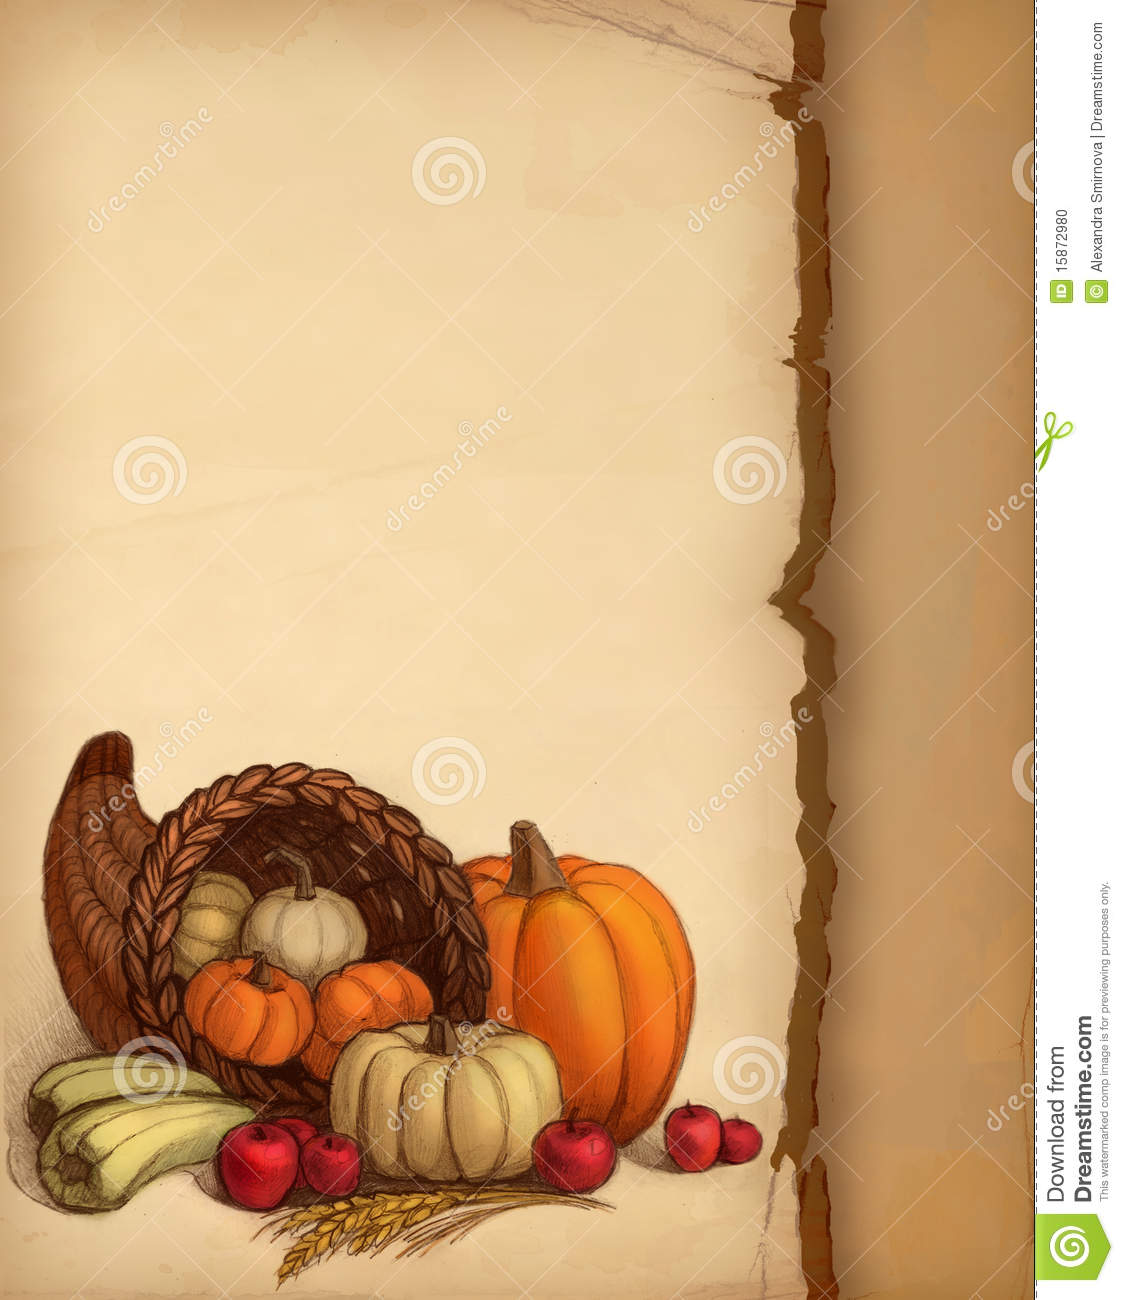 Thanksgiving background stock photo image 15872980